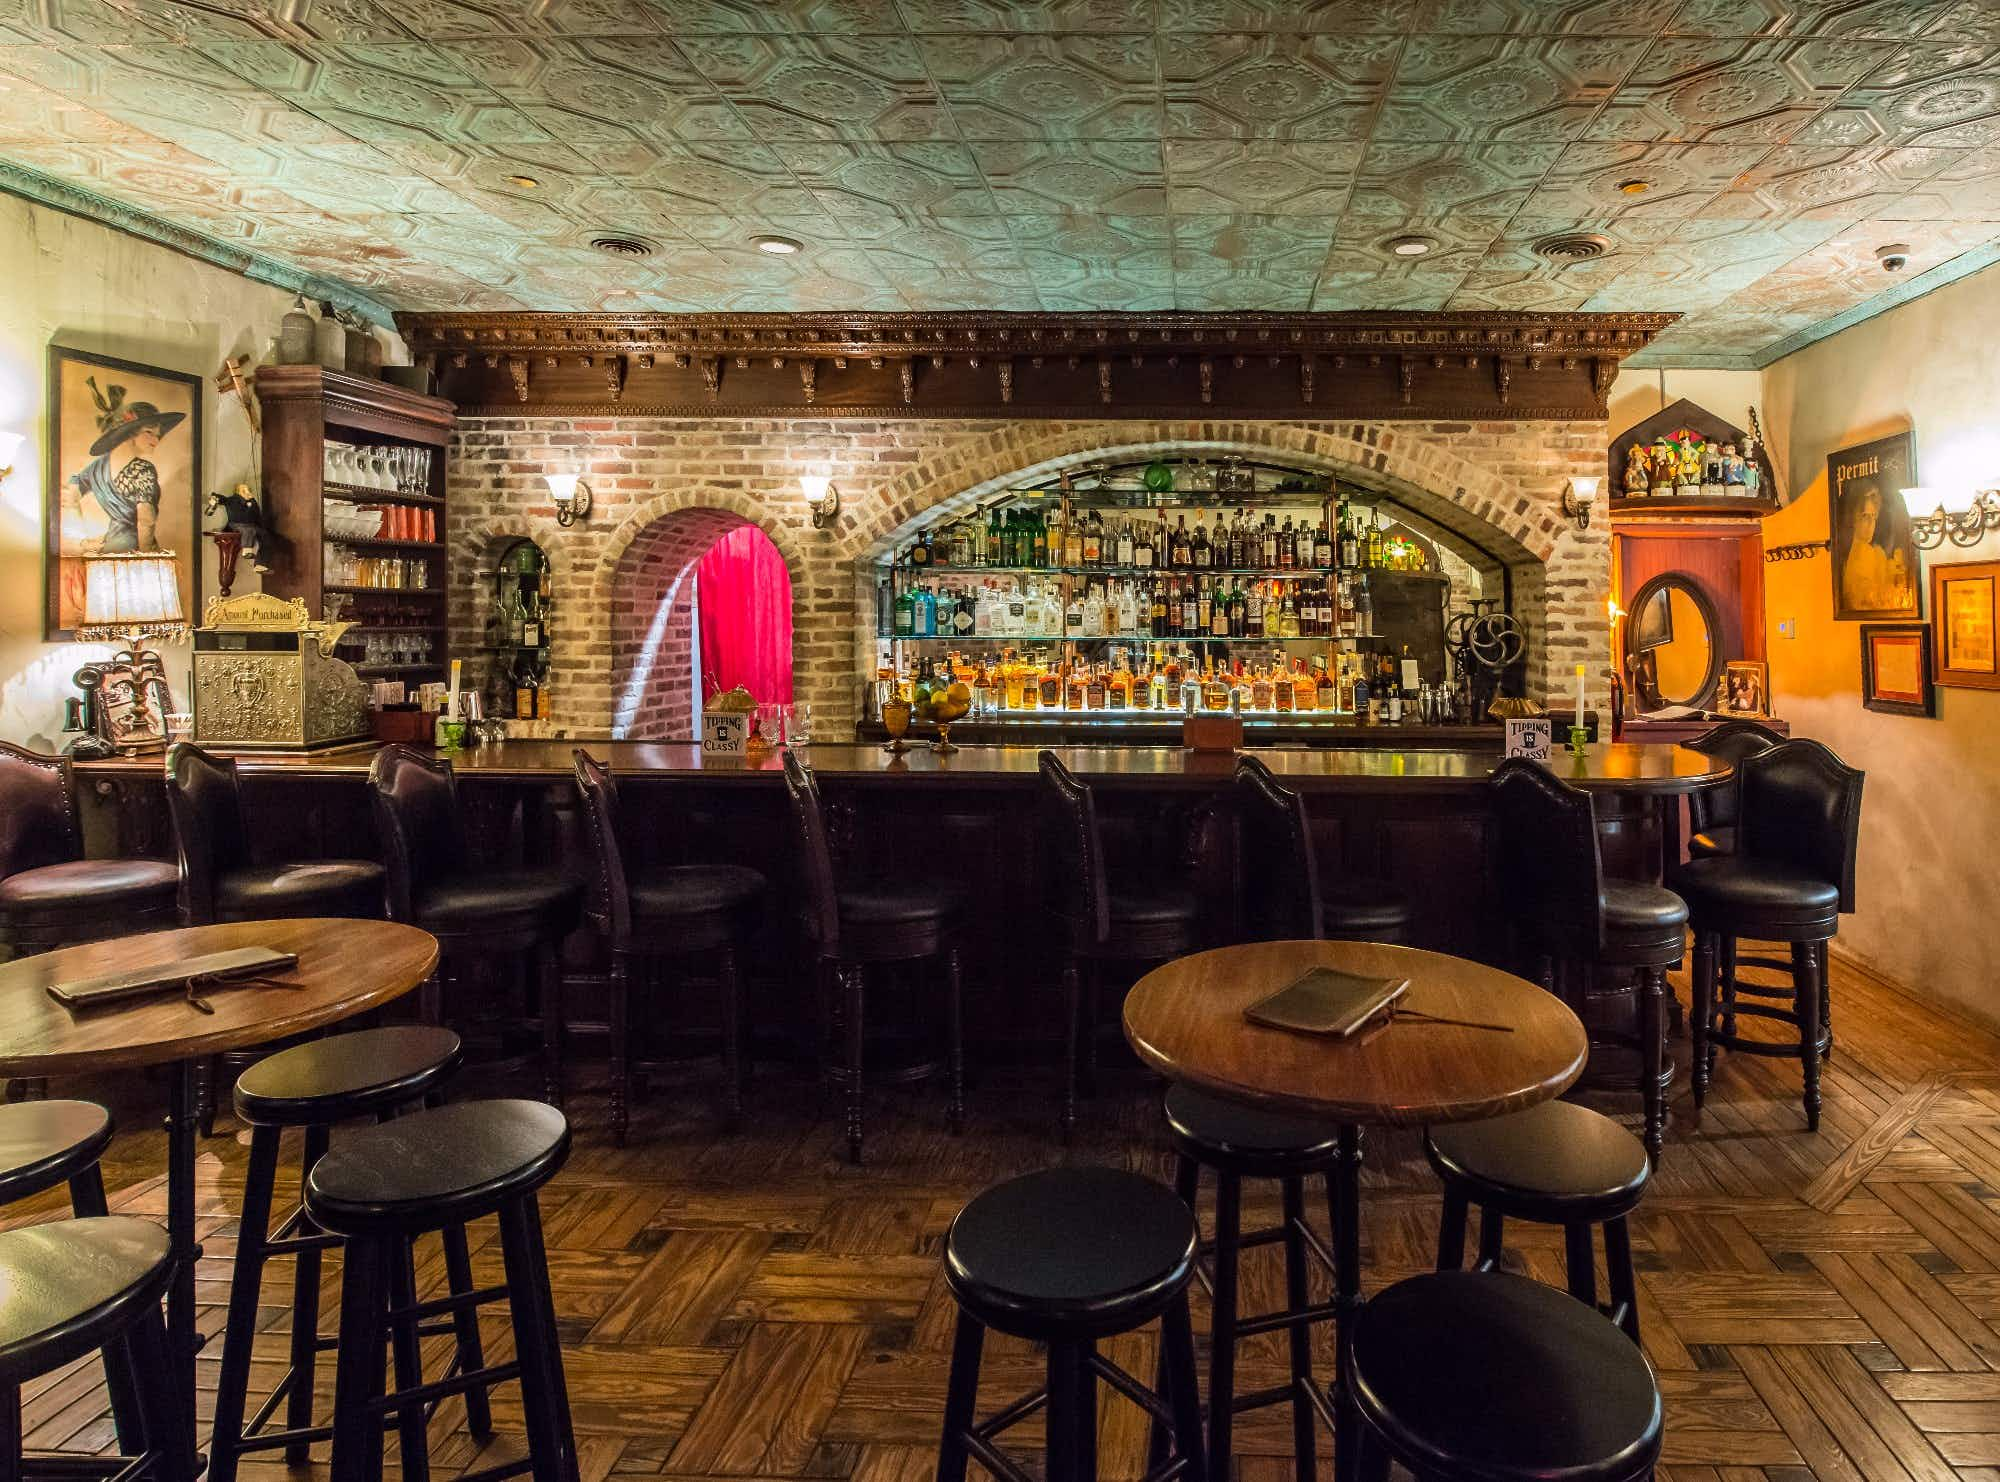 Inside Savannah's new hidden speakeasy and prohibition museum